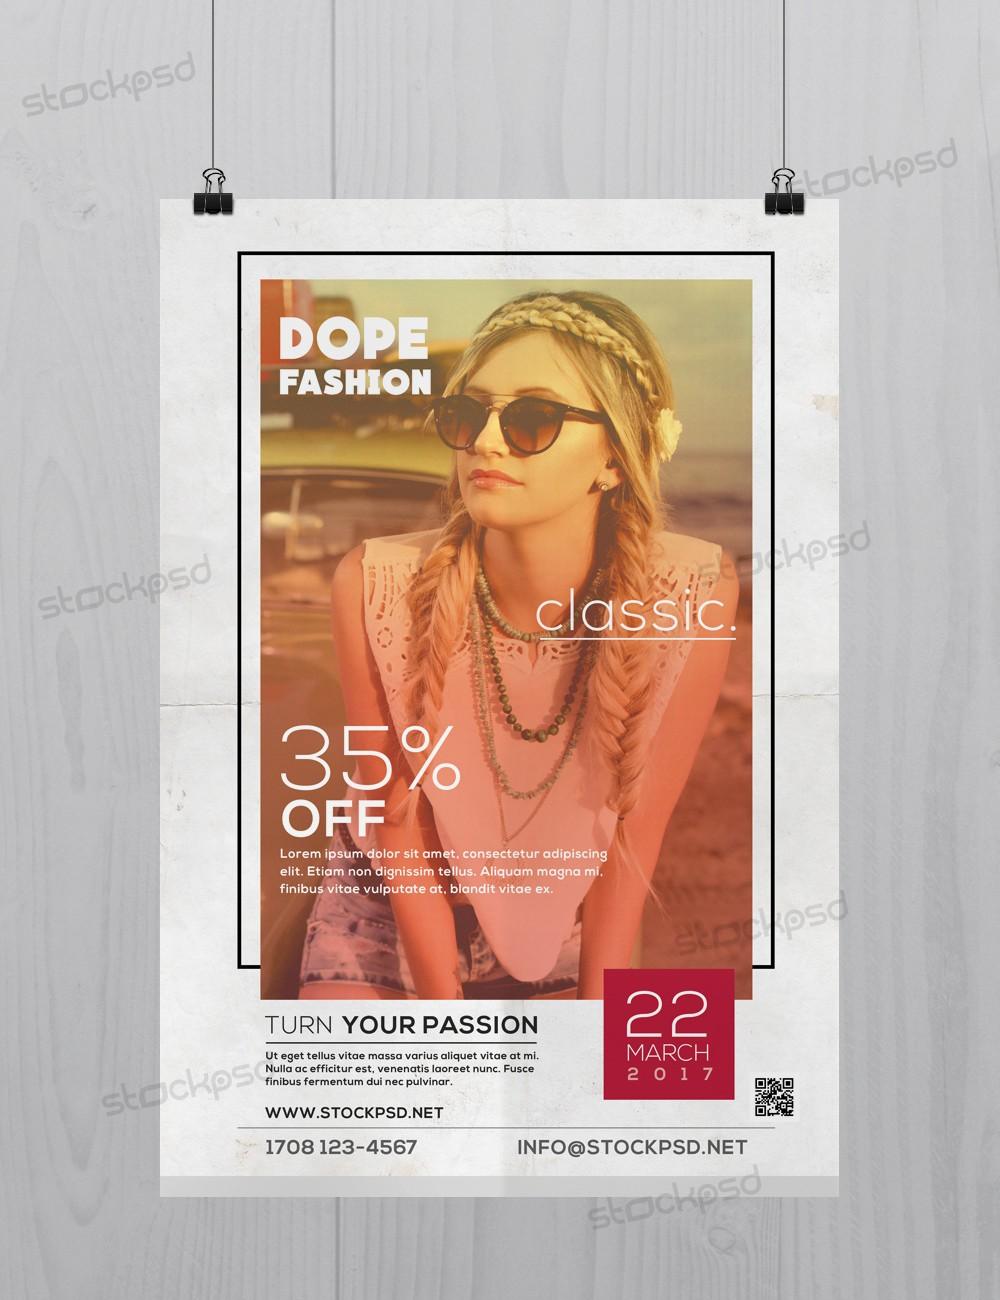 Dope Classic Fashion Free Psd Flyer Template Stockpsd